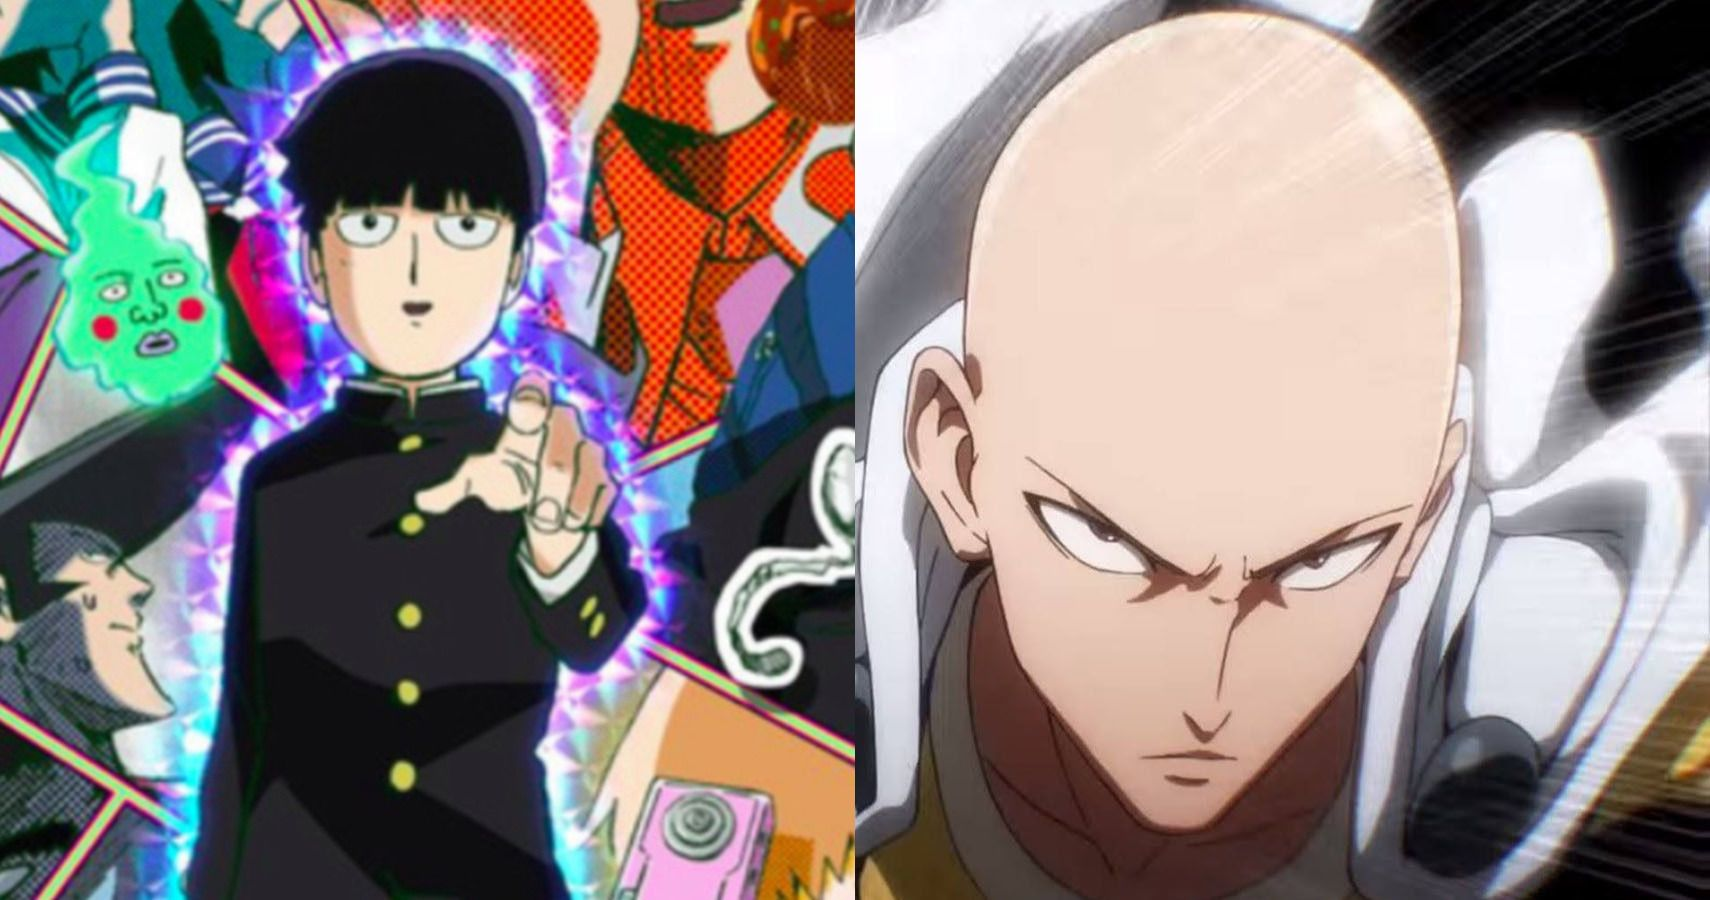 Mob Psycho 100 Vs One Punch Man 5 Things Each Anime Did Better Than The Other